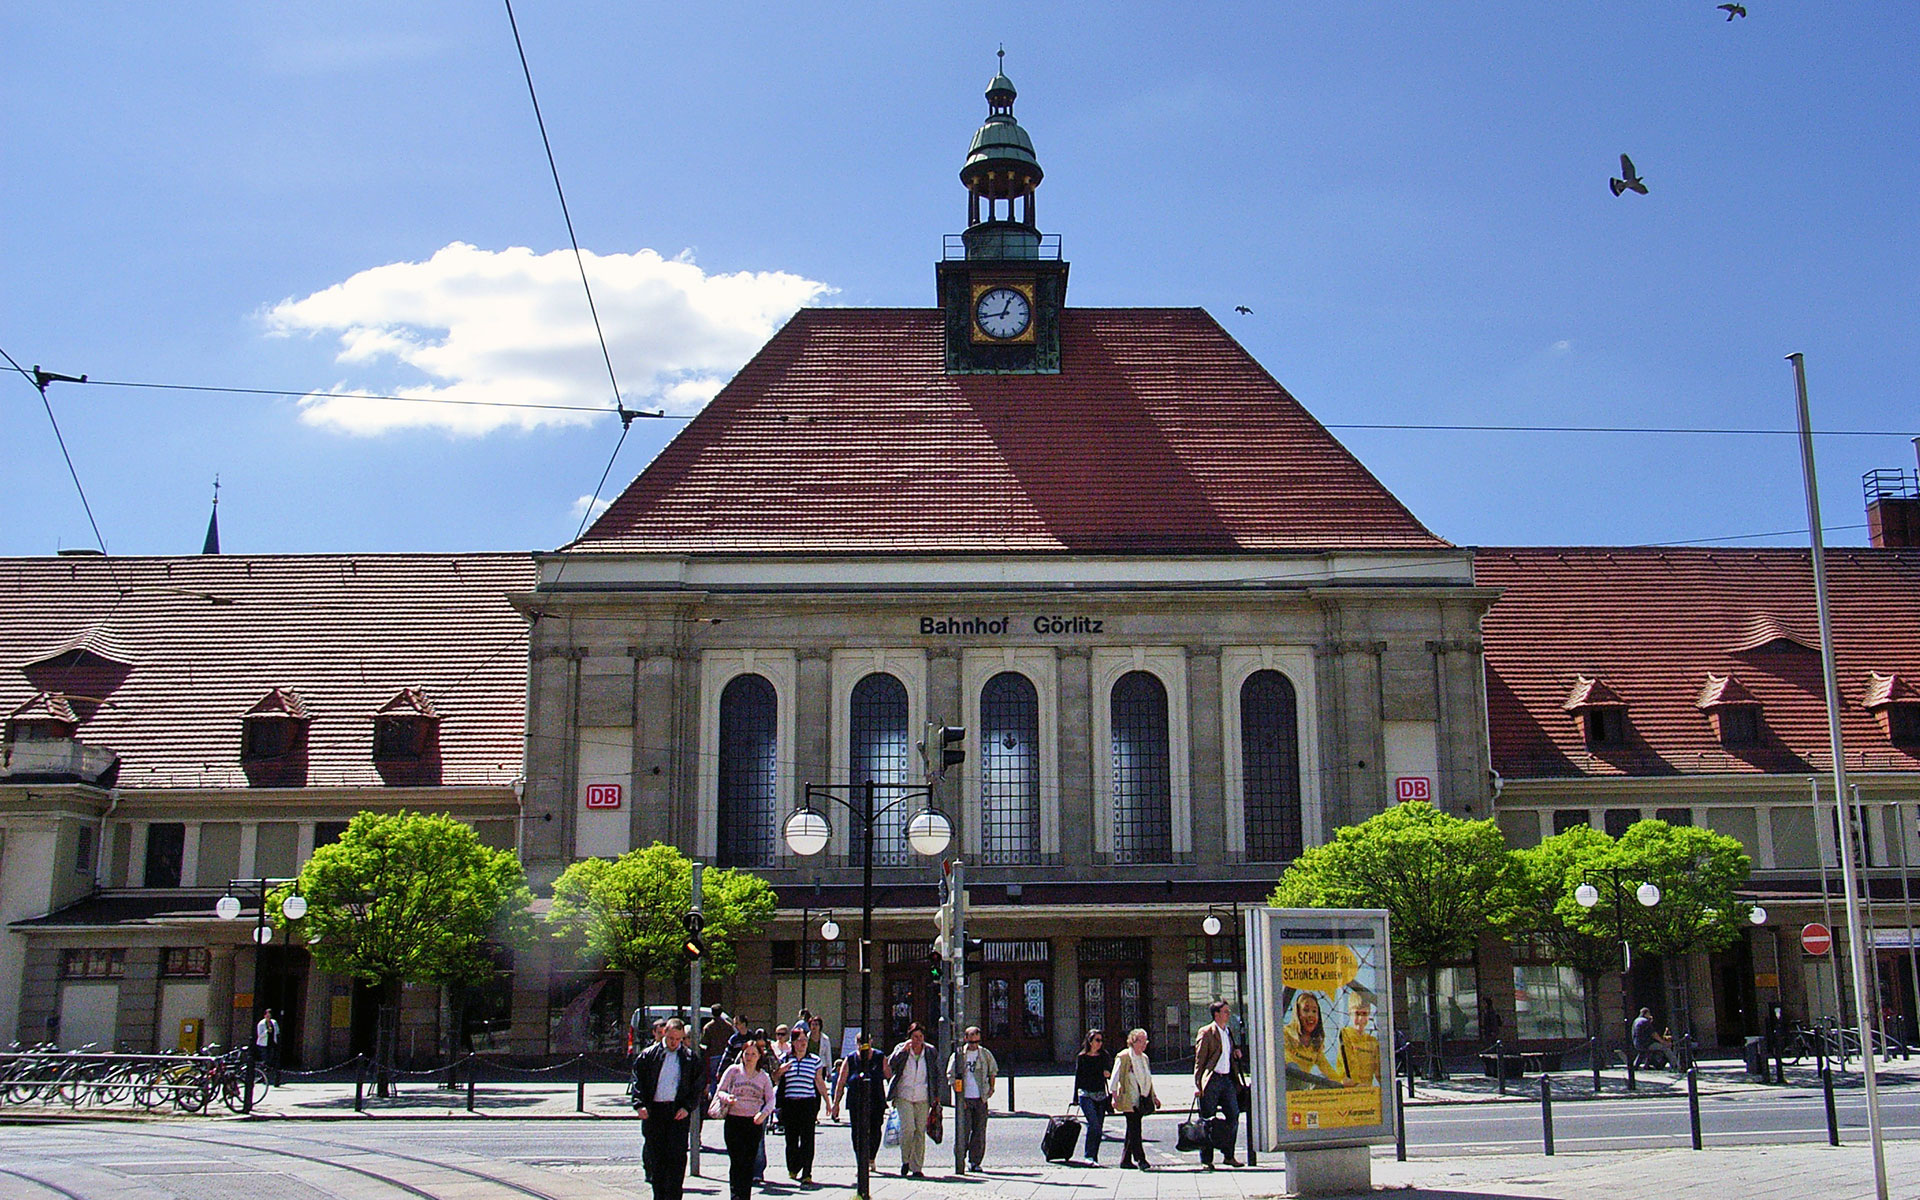 "The main station of Görlitz, Germany (<a href=""https://commons.wikimedia.org/wiki/File:Bahnhof_G%C3%B6rlitz.jpg"">photo</a> by Manecke / <a href=""https://creativecommons.org/licenses/by-sa/3.0/deed.en"">CC BY-SA 3.0</a>)"